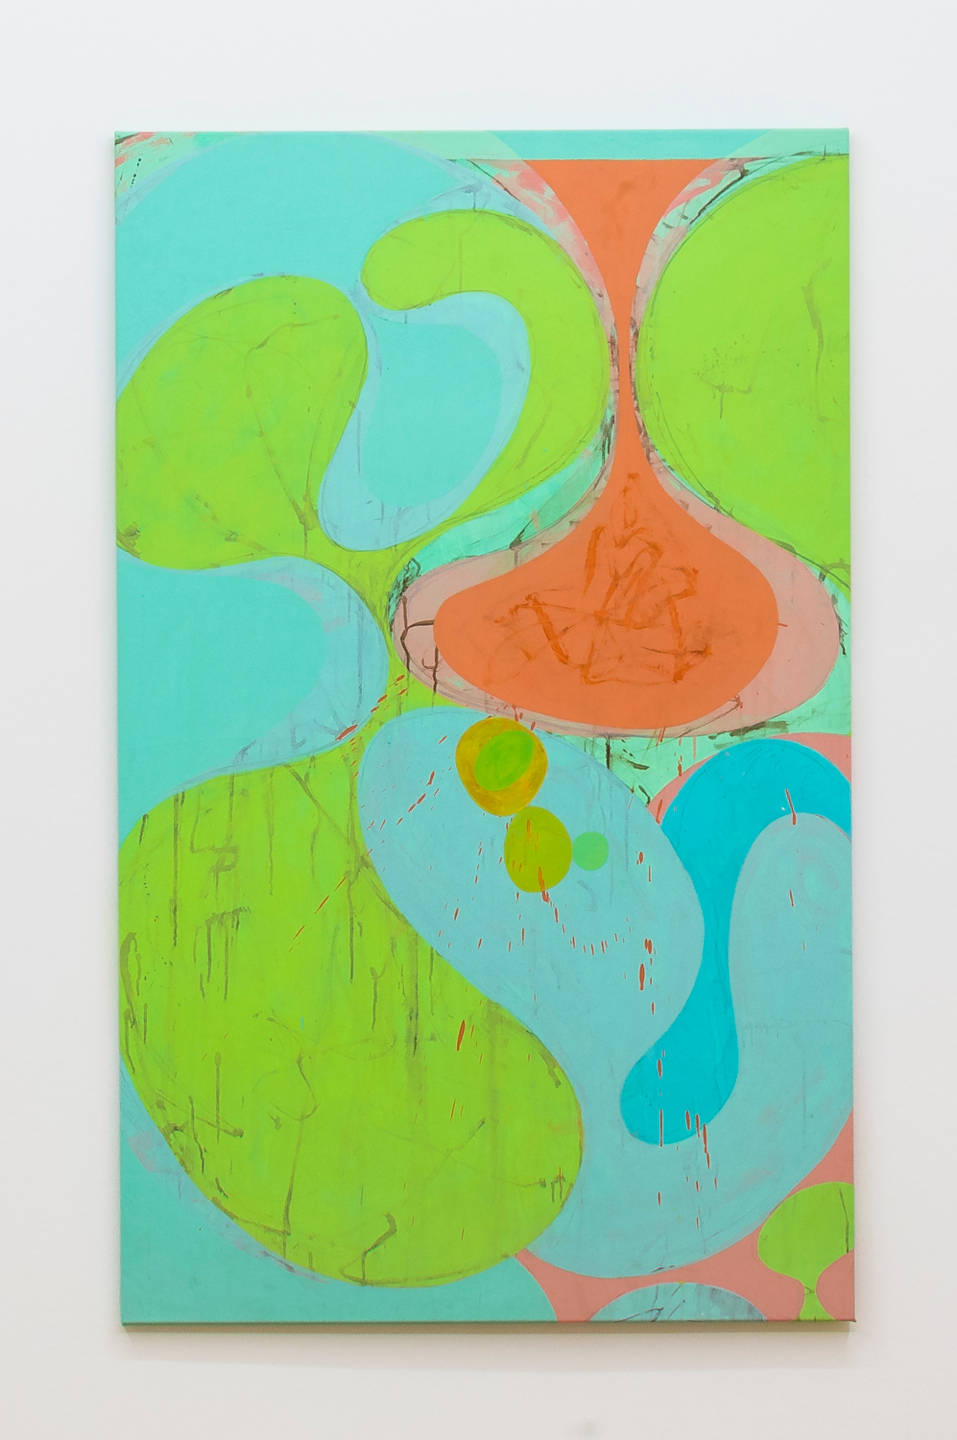 Flavio Garciandía, Sin titulo, 2010. Acrylic on canvas 145 x 89 x 2 cm (57 1/8 x 35 x 3/4 in.) signed and dated verso